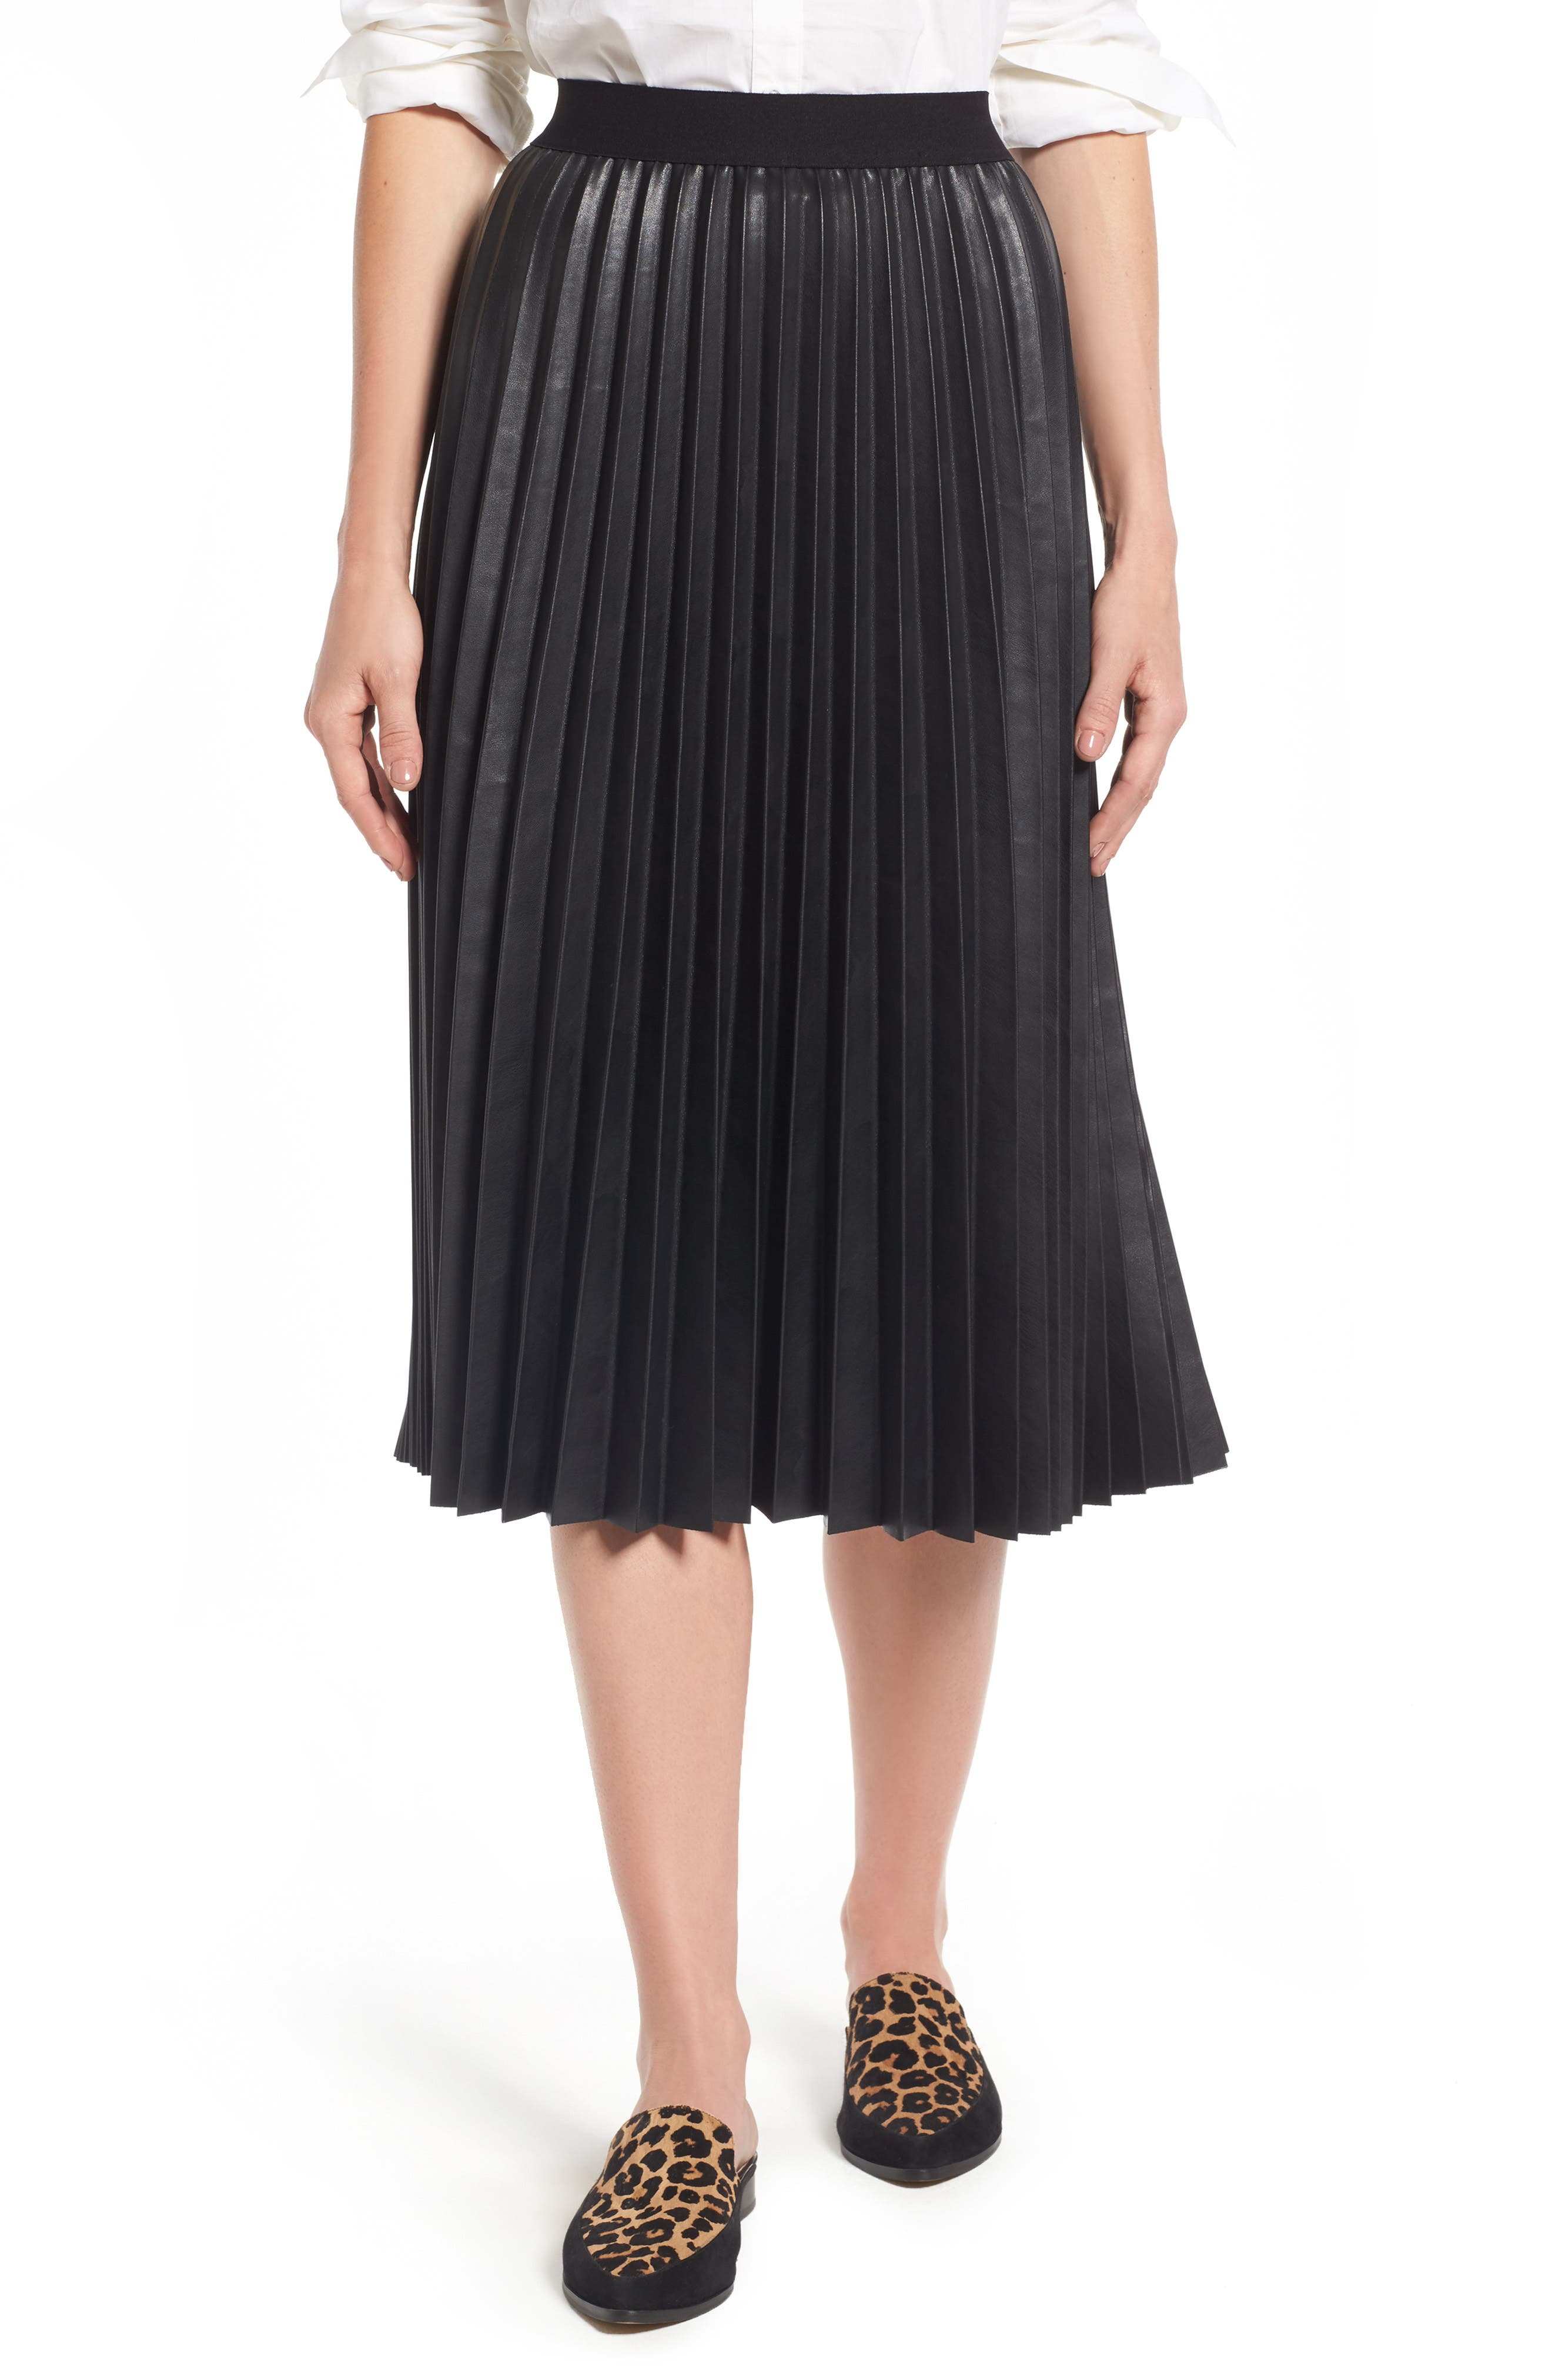 Faux Leather Skirts: A-Line, Pencil, Maxi, Miniskirts & More ...